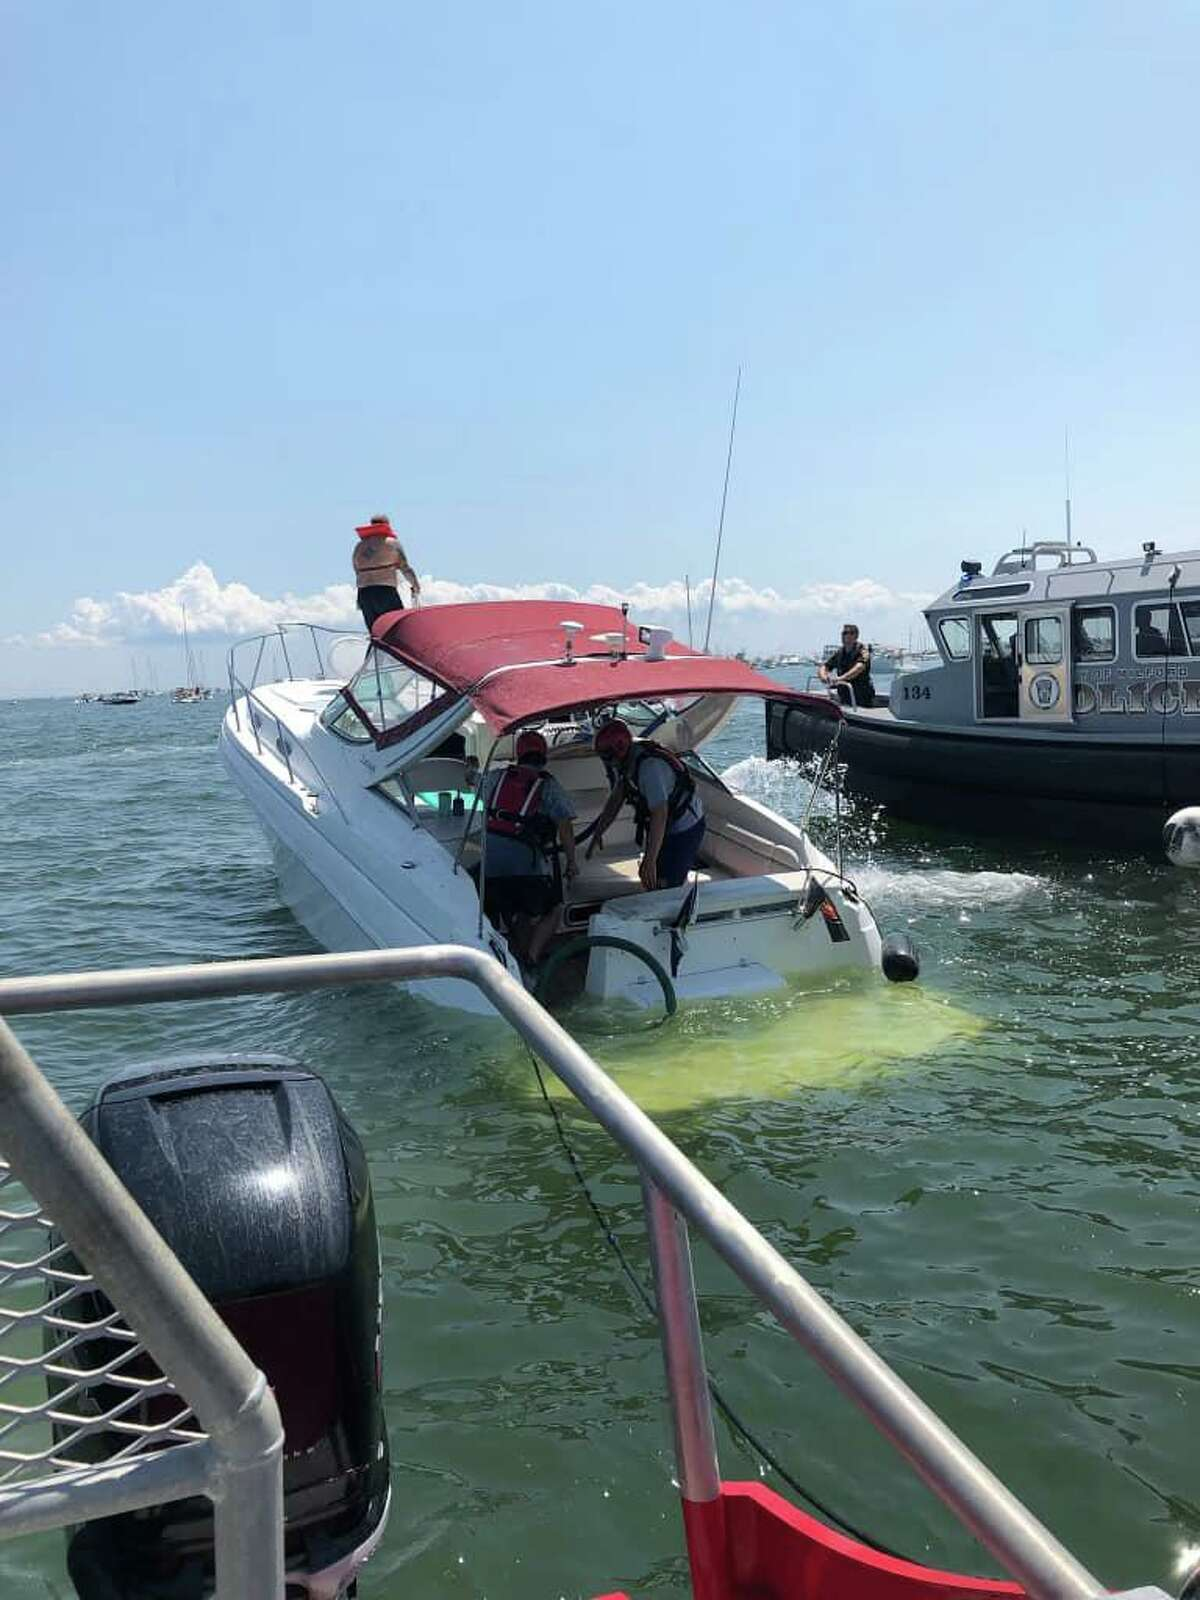 A boat that sank in the water off Milford, Conn., on Saturday, July 24, 2021.